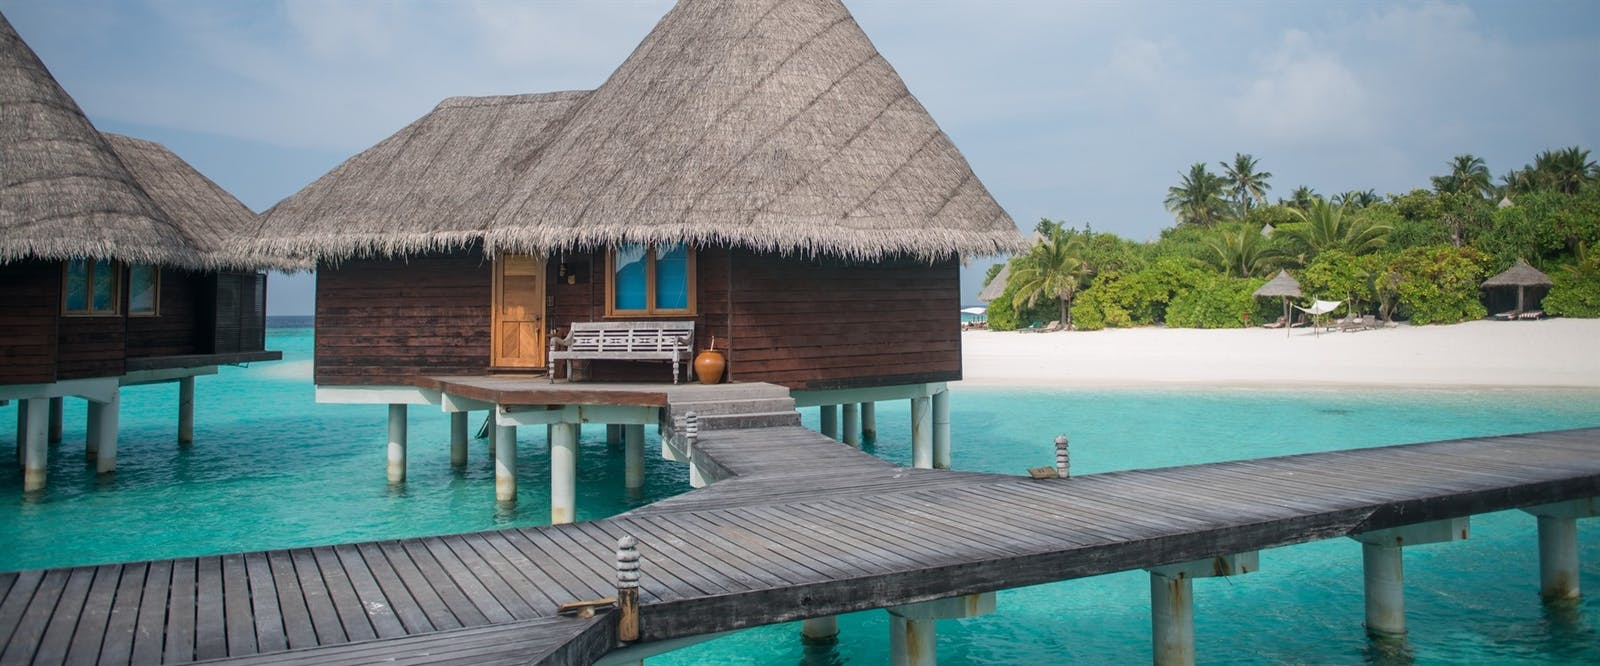 Lagoon Villa Exterior at Coco Palm Dhuni Kolhu, Maldives, Indian Ocean